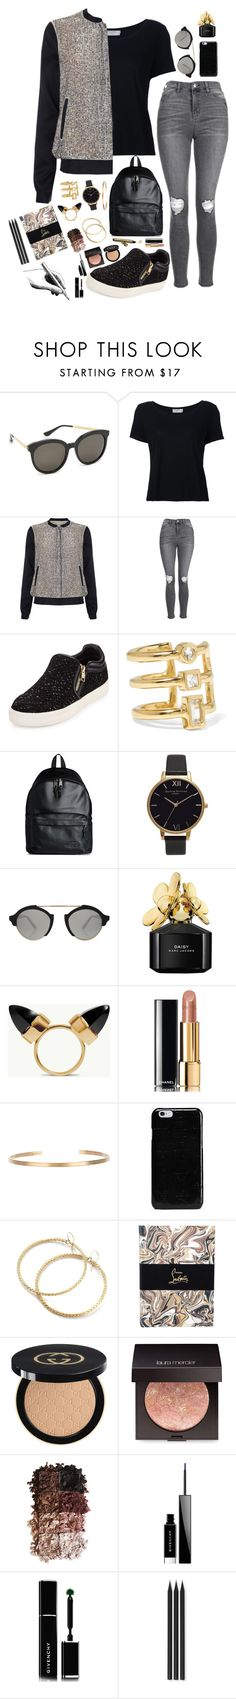 """Untitled #1449"" by style-and-chic-boutique ❤ liked on Polyvore featuring Gentle Monster, Frame, Phase Eight, Topshop, Ash, Elizabeth and James, Eastpak, Olivia Burton, Illesteva and Marc Jacobs"